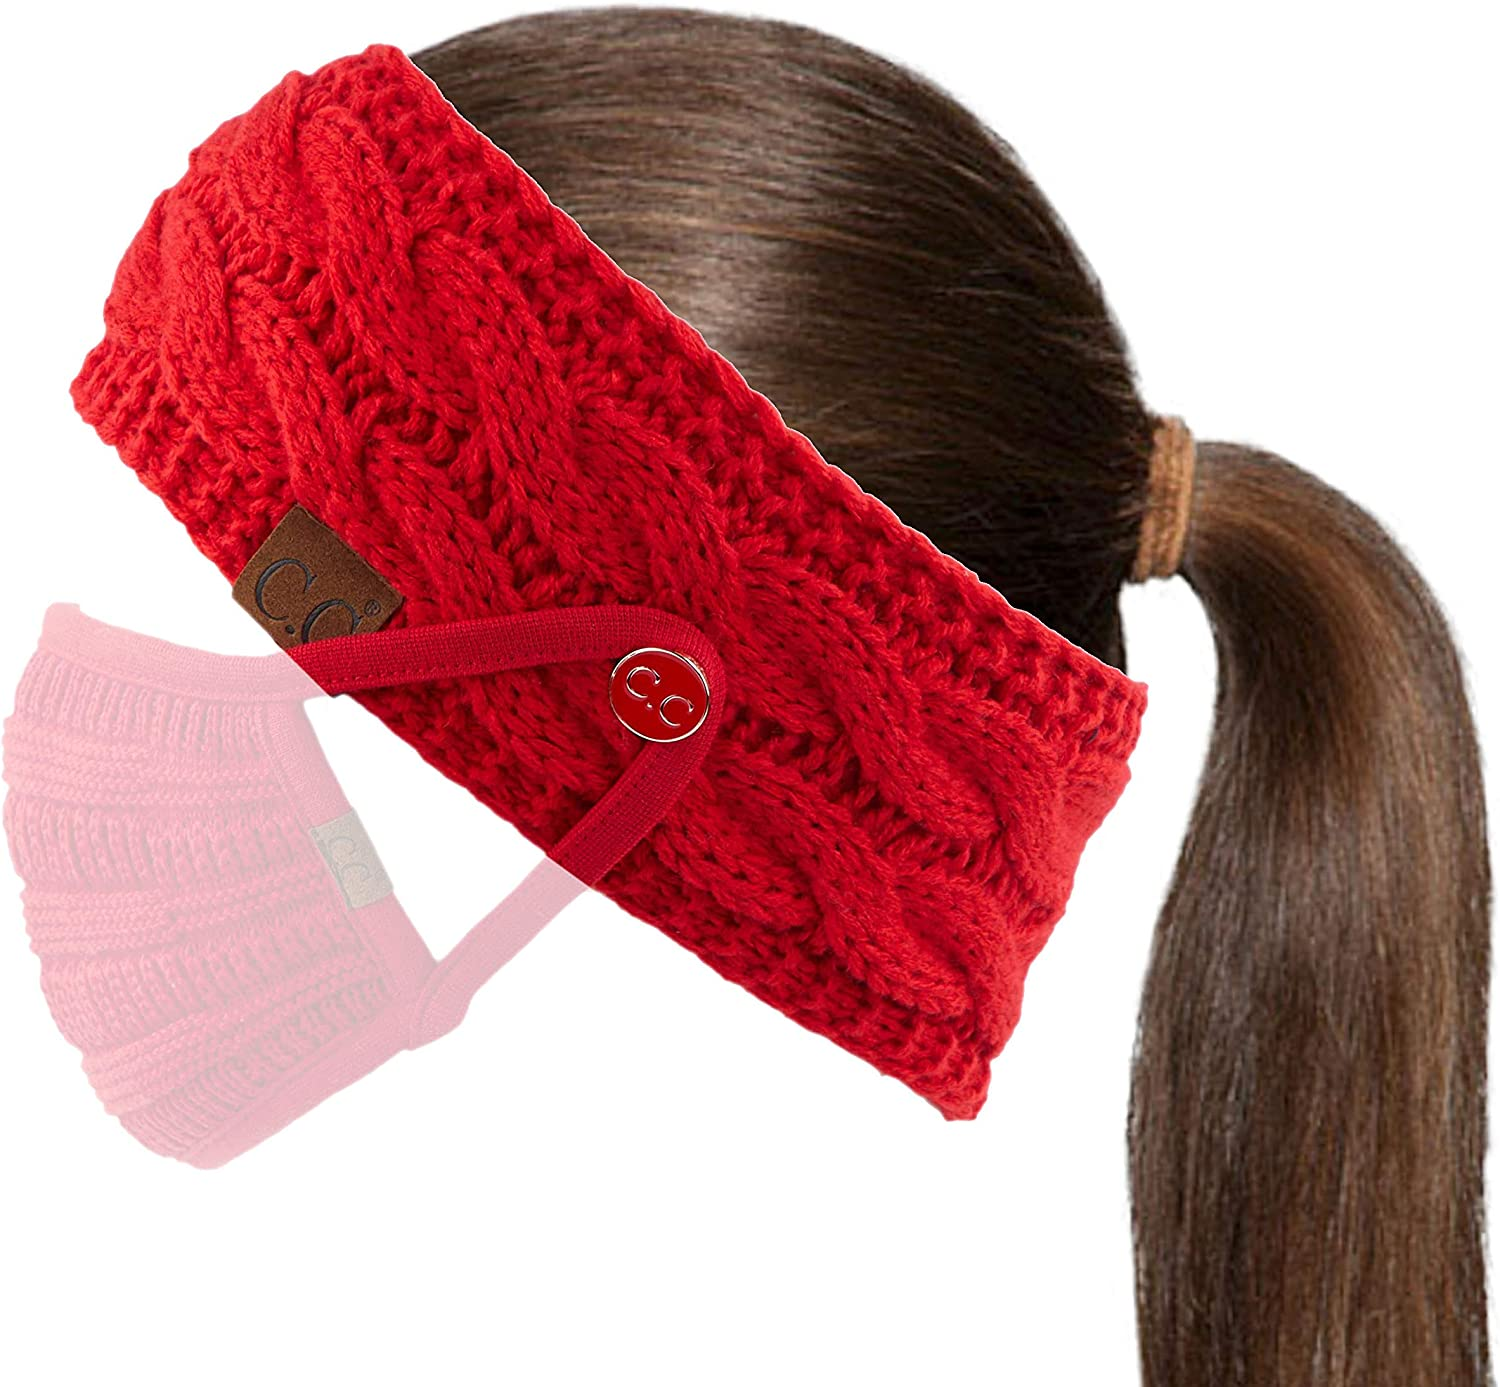 A Button Red BHW-1 C.C Winter Fuzzy Fleece Lined Thick Knitted Headband Headwrap Epoxy Button for Face Masks